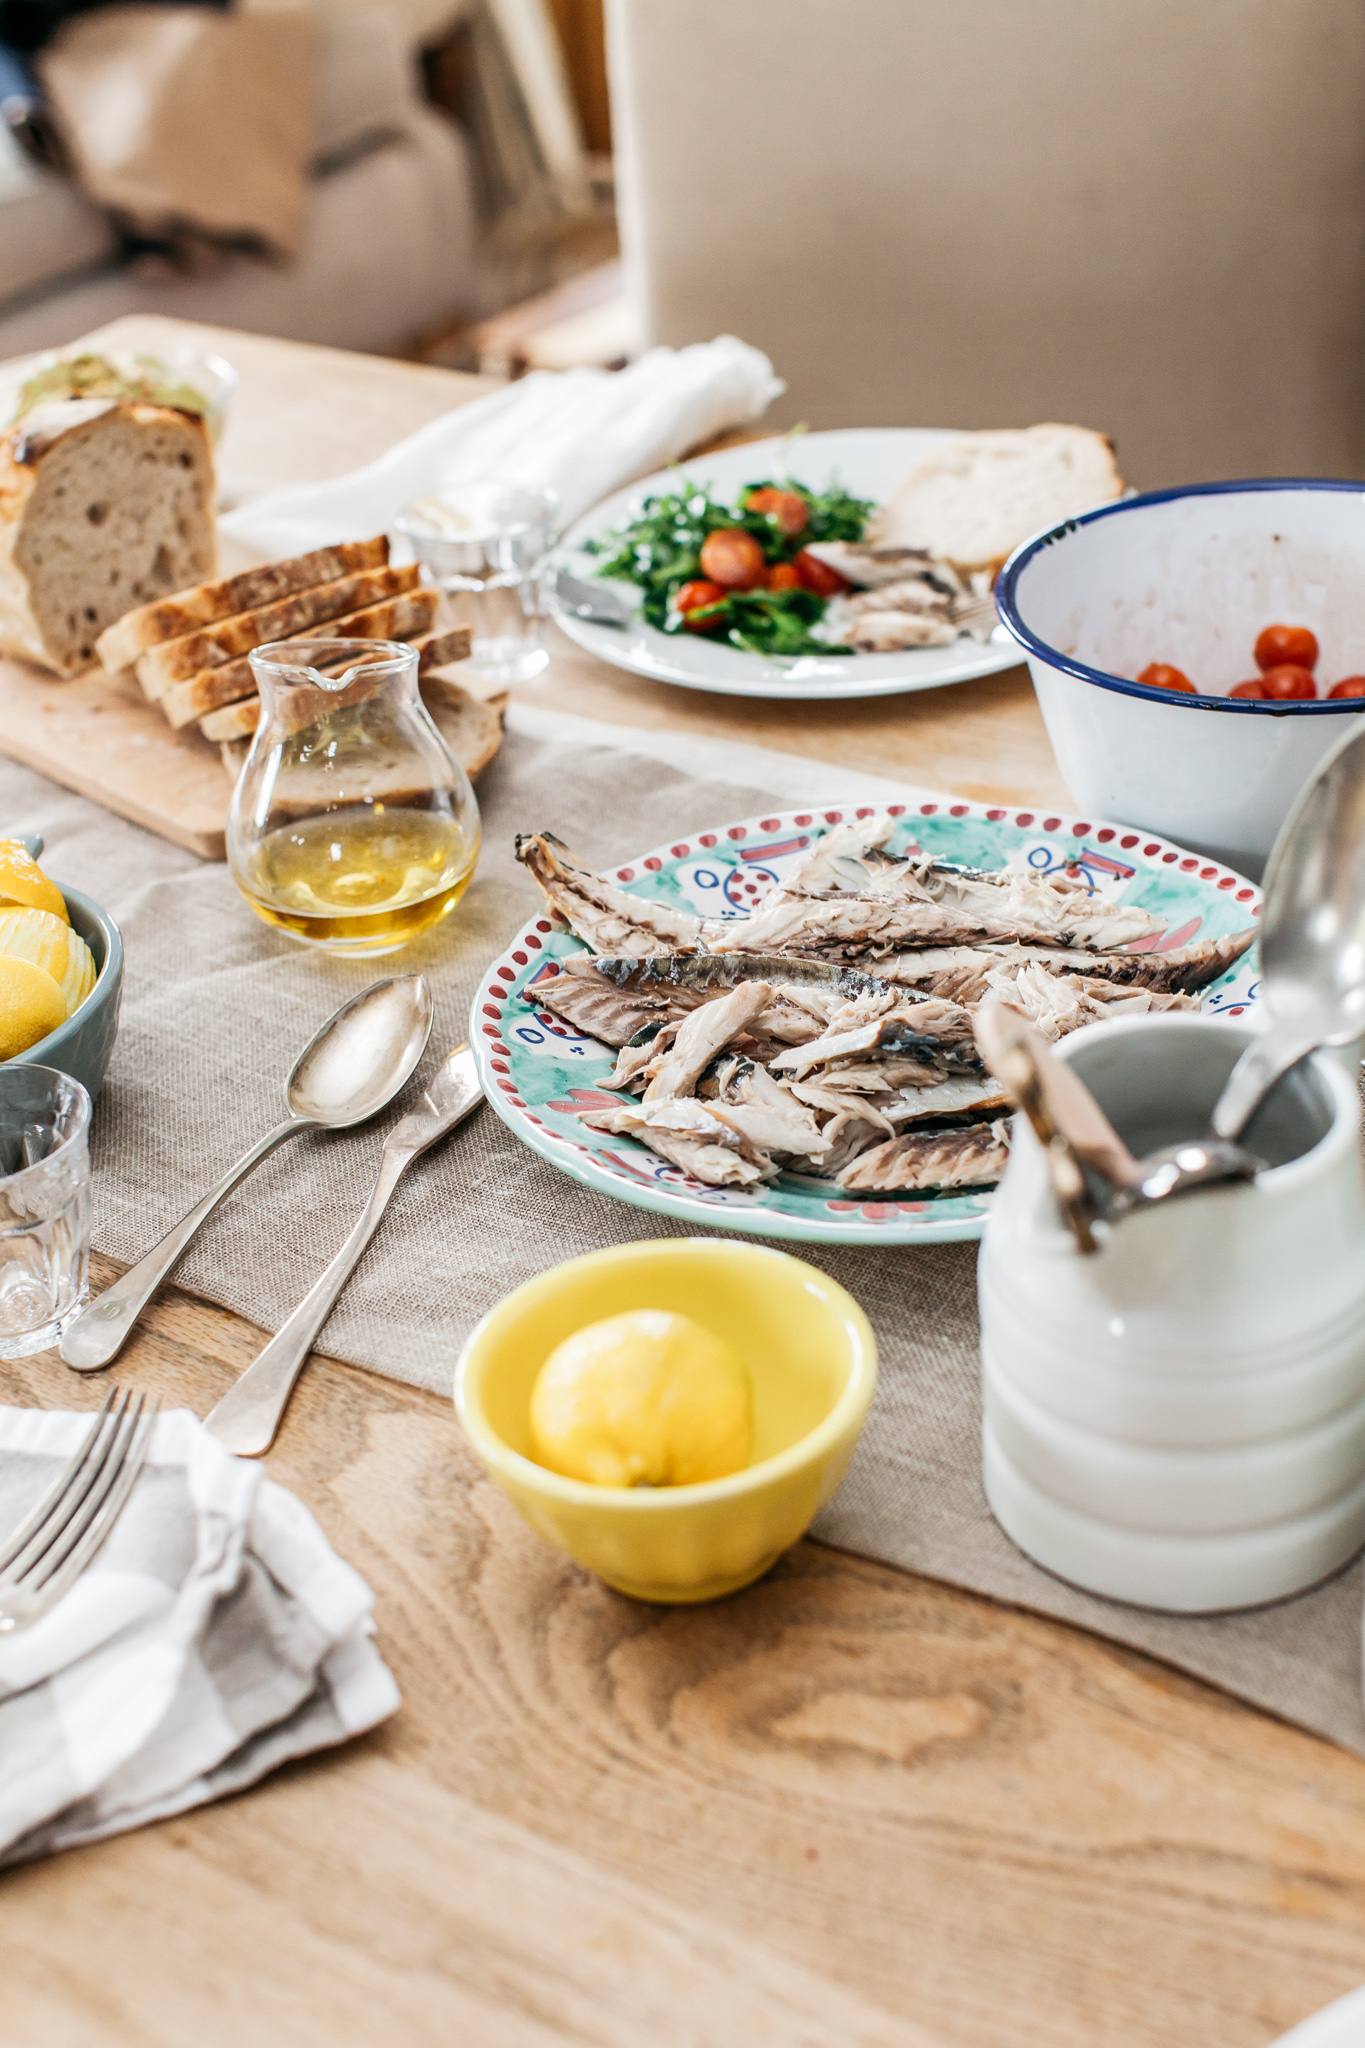 A fish based lunch.Food lifestyle photography for Bare Biology by Emma Gutteridge